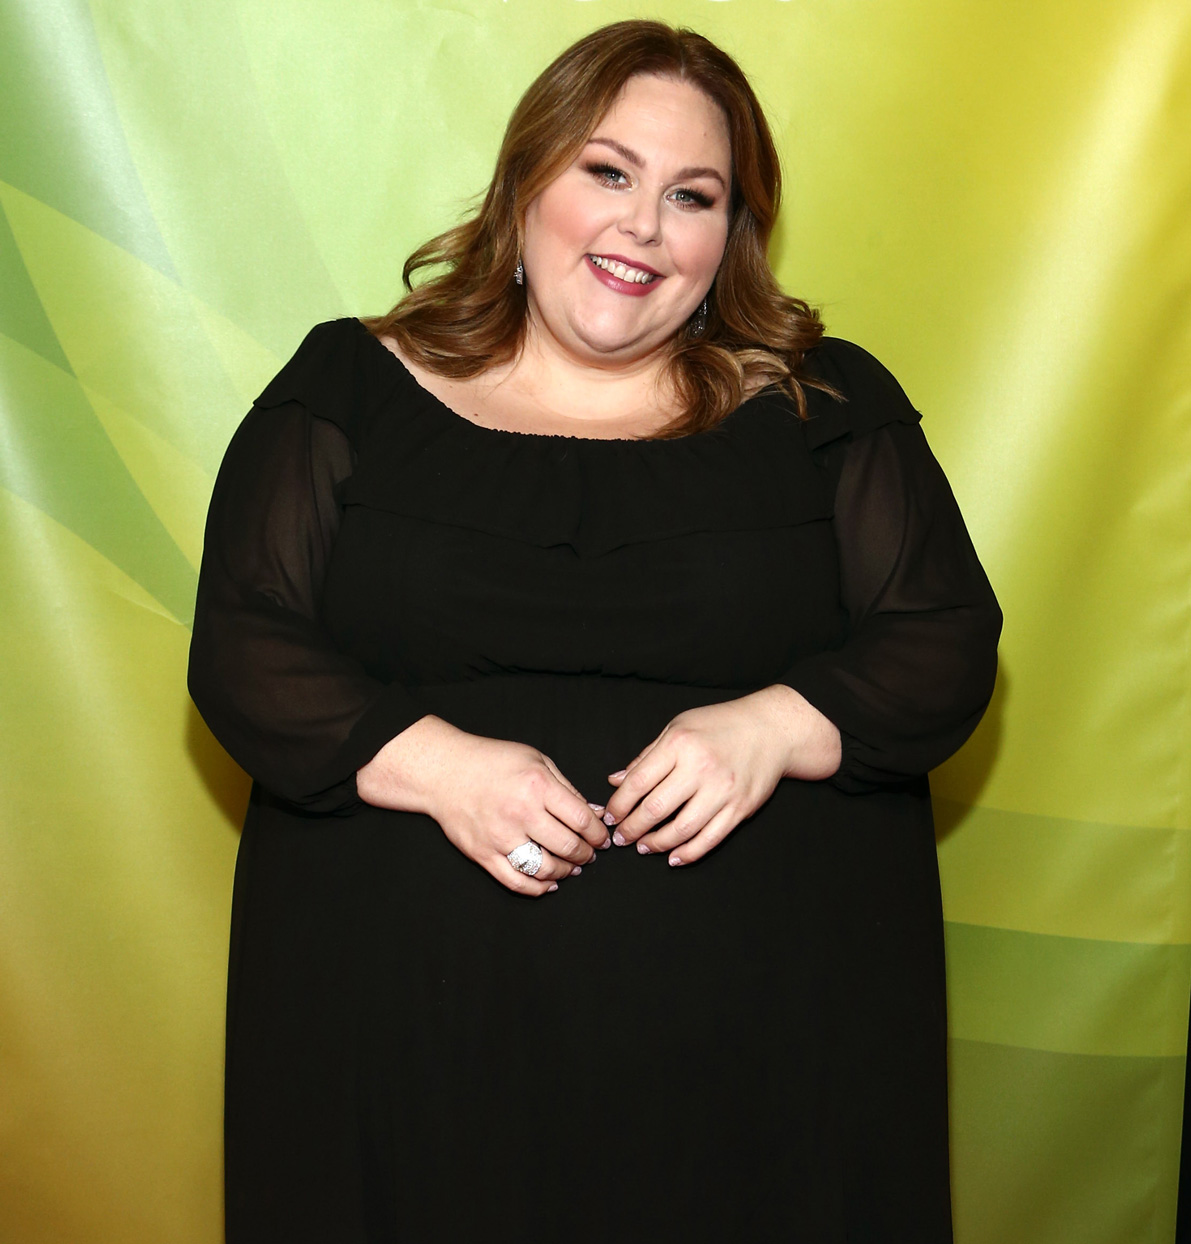 This Is Us' Chrissy Metz Opens Up About Her Weight Issues: 'It's About Progress, Not Perfection'